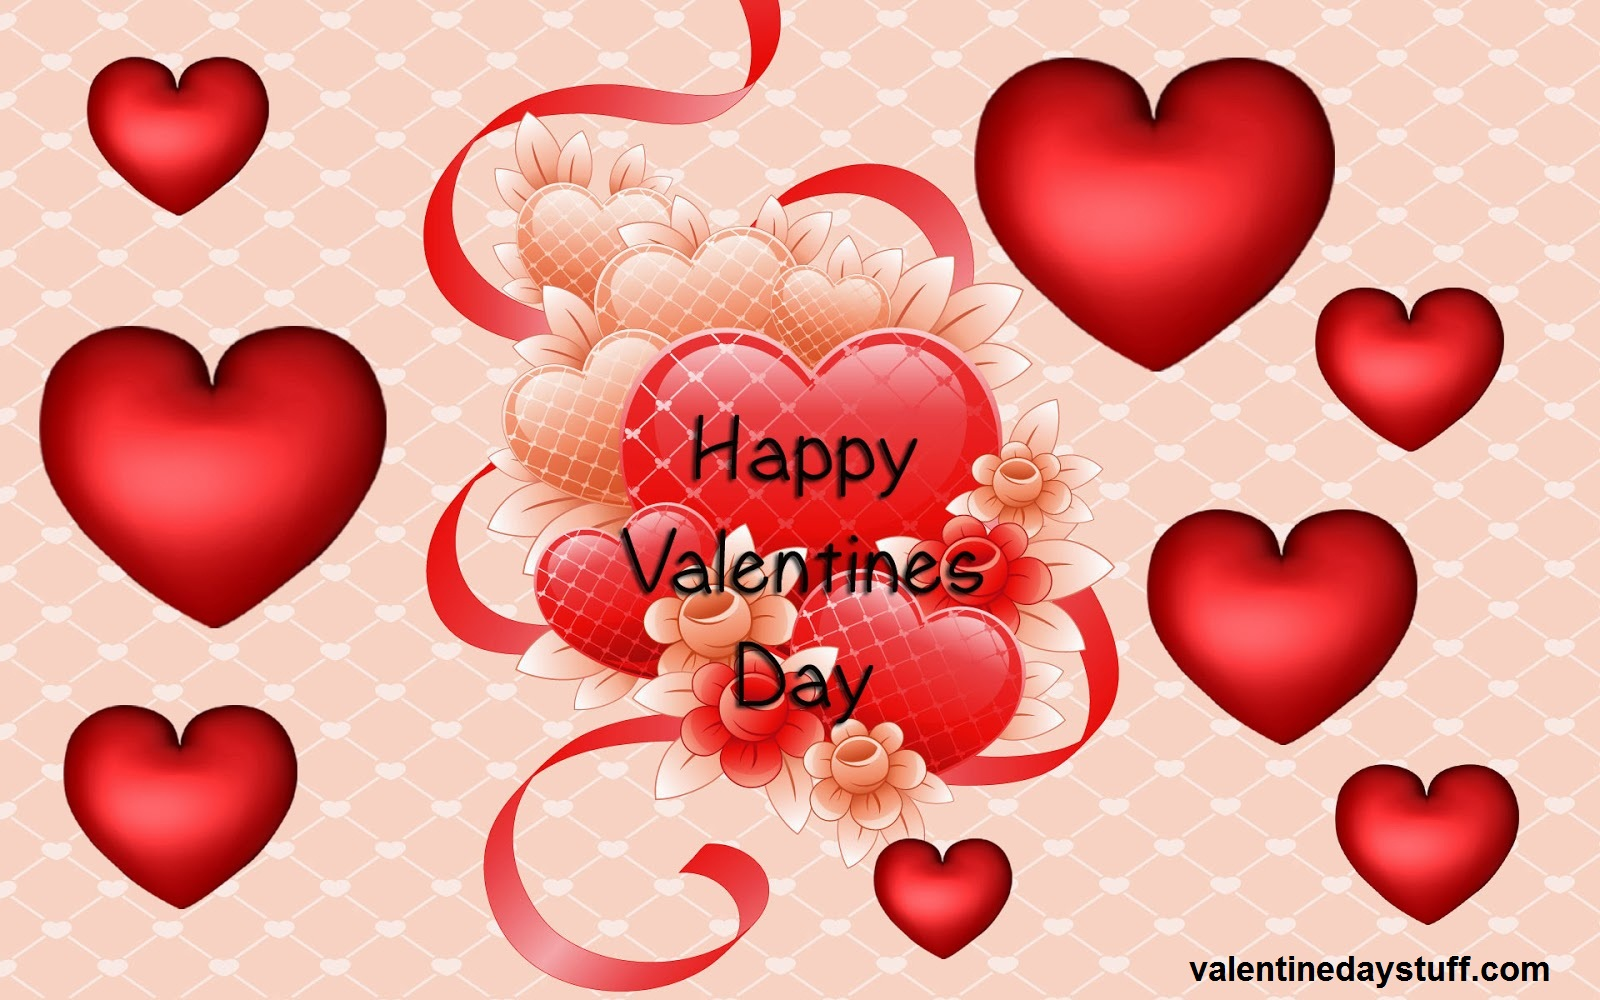 Happy valentines day greeting cards 2018 free download techicy download valentine day greeting card kristyandbryce Image collections